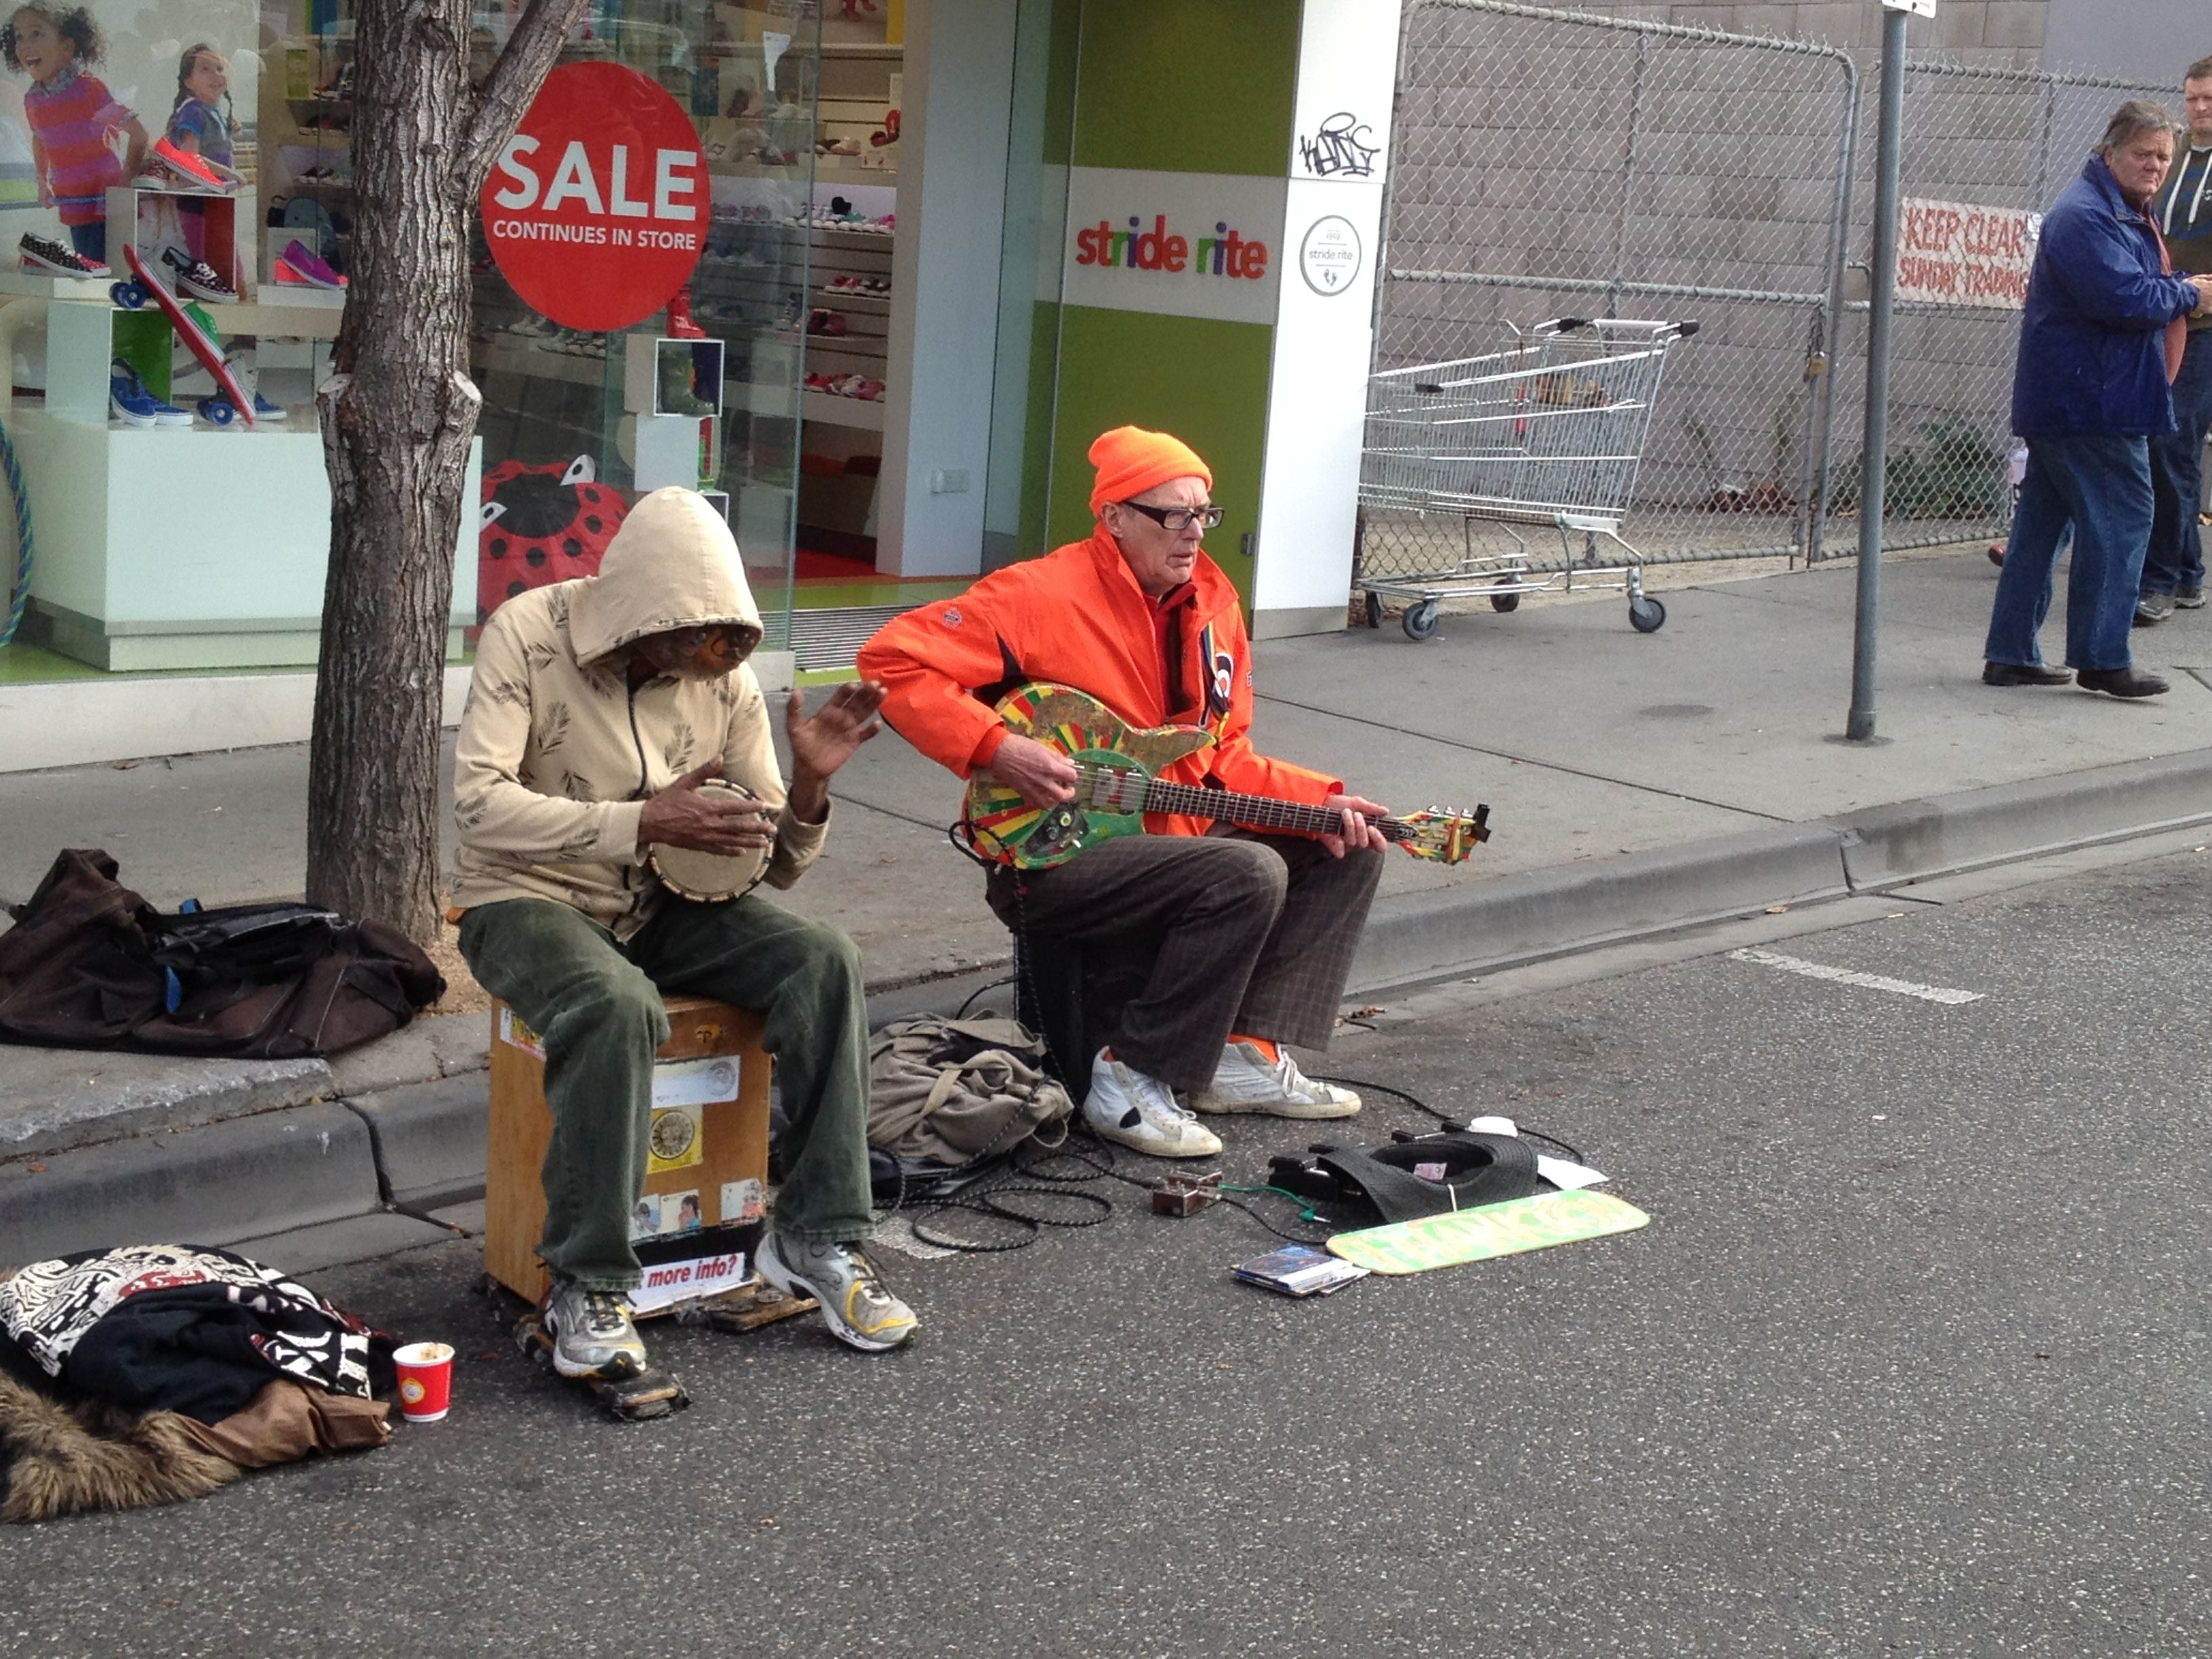 Buskers at market Camberwell Camberwell, Baby strollers